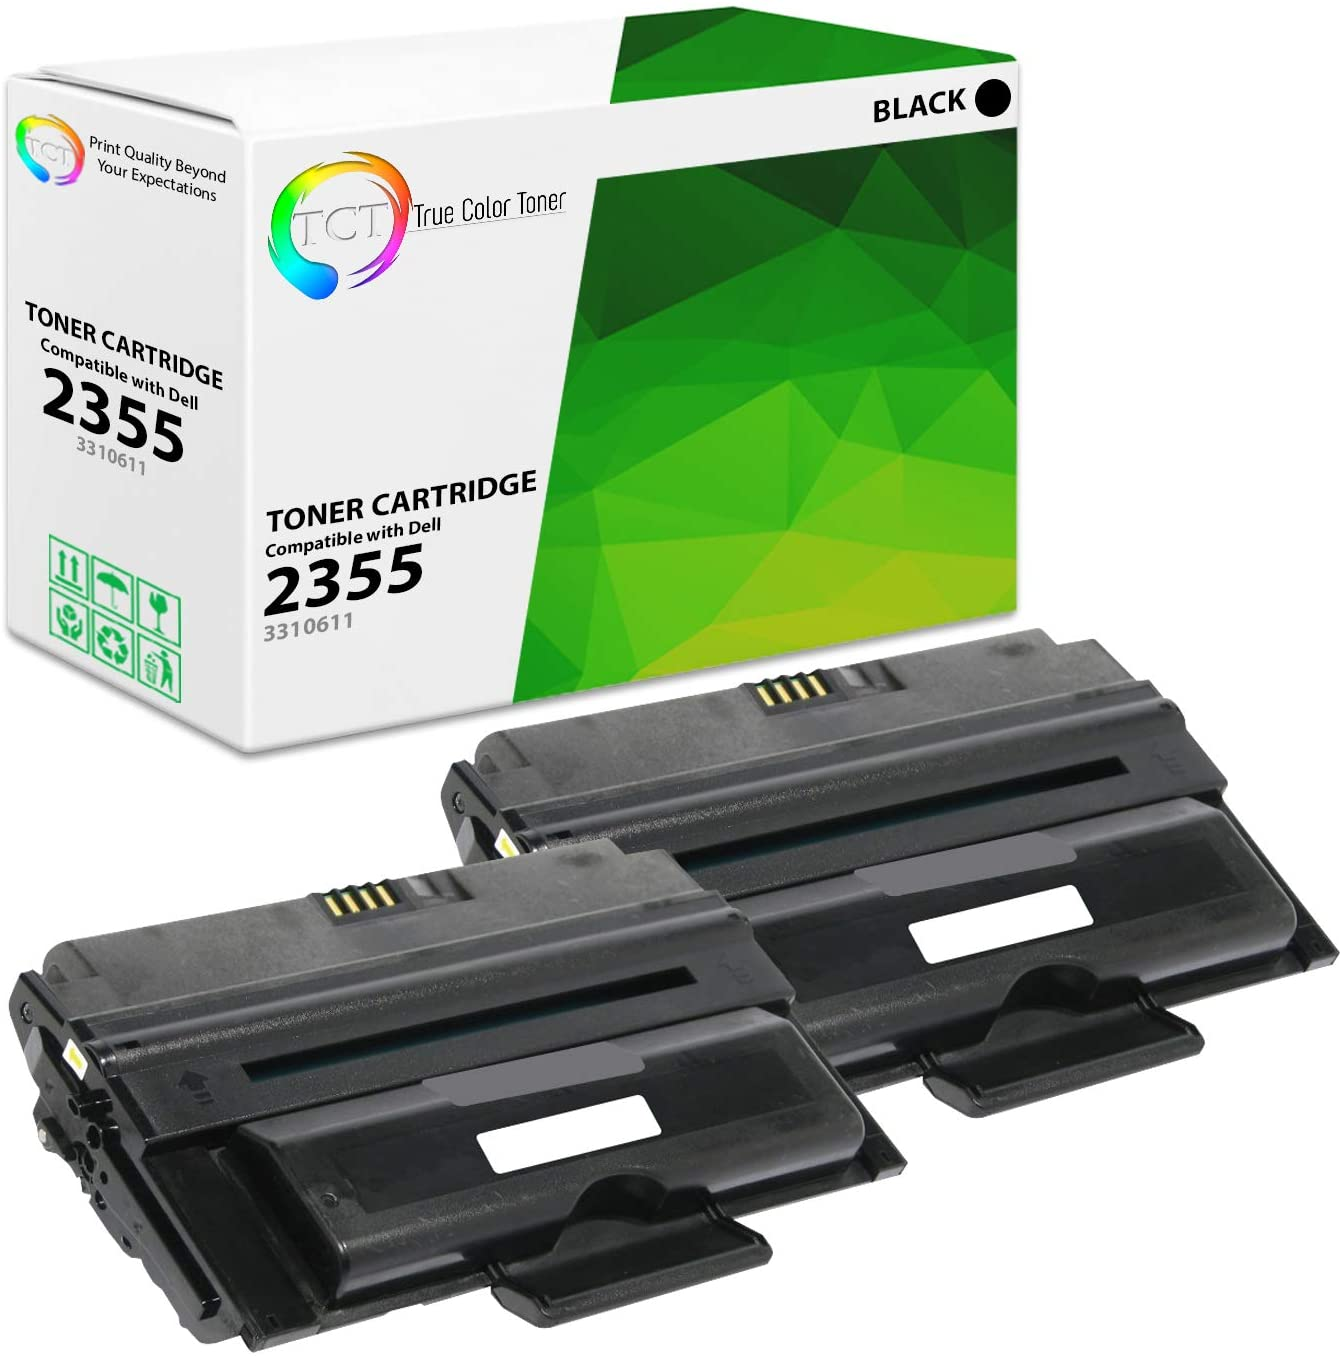 TCT Premium Compatible Toner Cartridge Replacement for Dell 331-0611 Black High Yield Works with Dell 2355 Printers (10,000 Pages) - 2 Pack